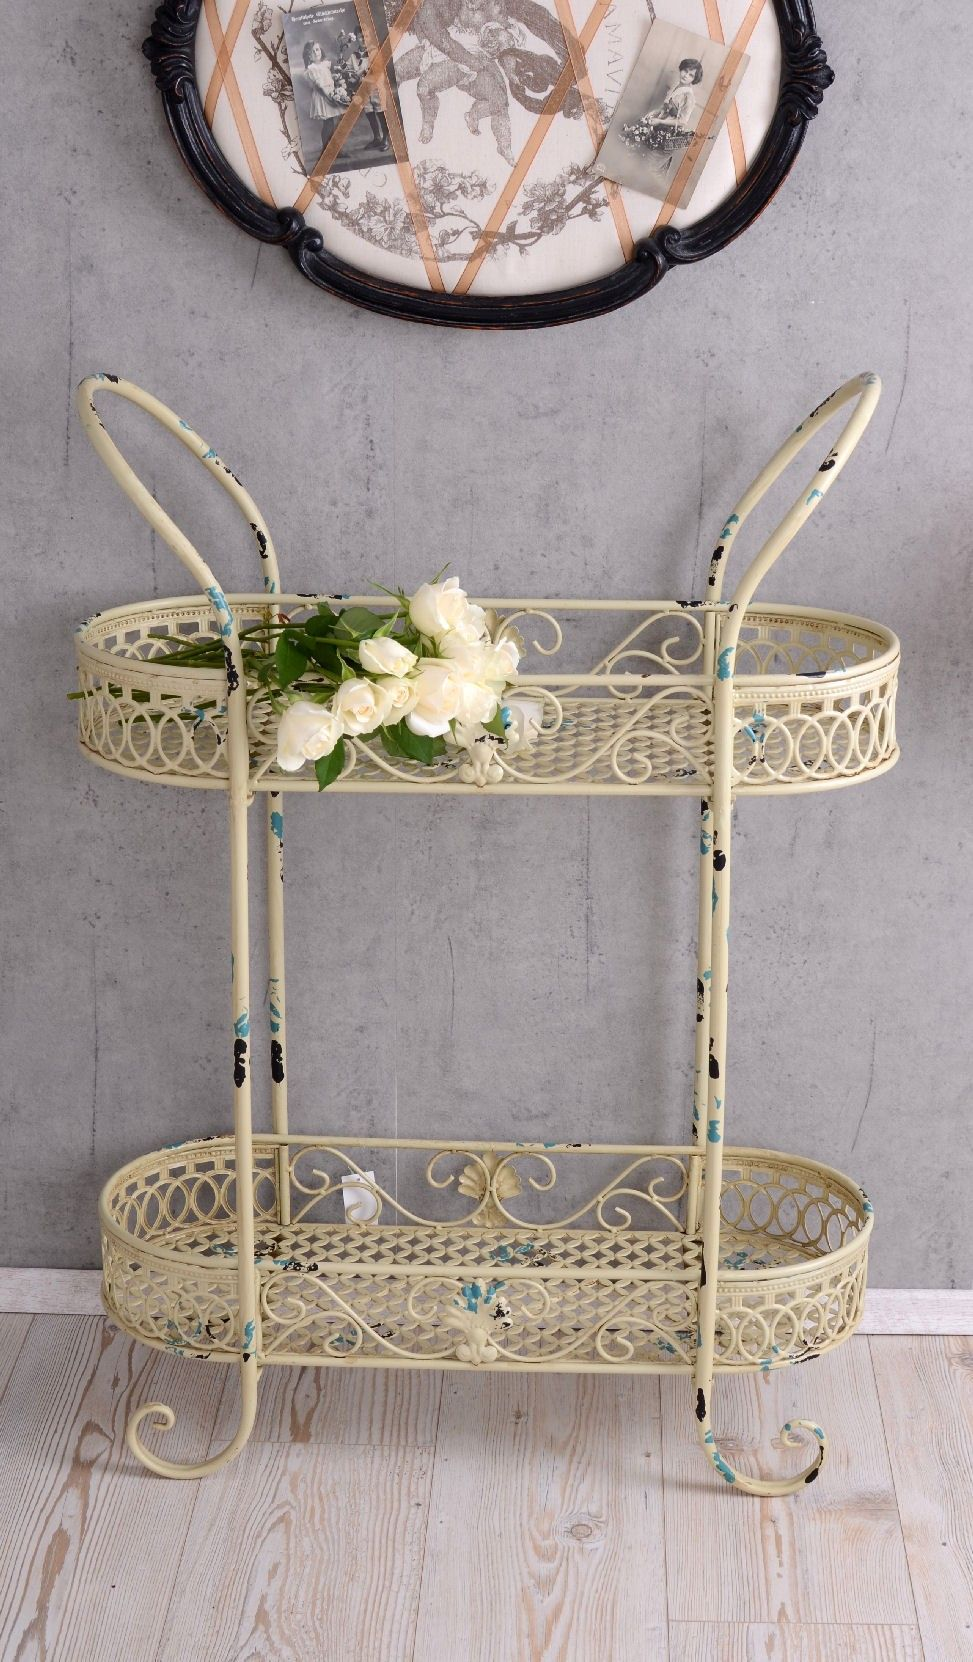 etagere shabby chic blumentreppe blumenetagere metallregal blumenbank balkon pinterest. Black Bedroom Furniture Sets. Home Design Ideas